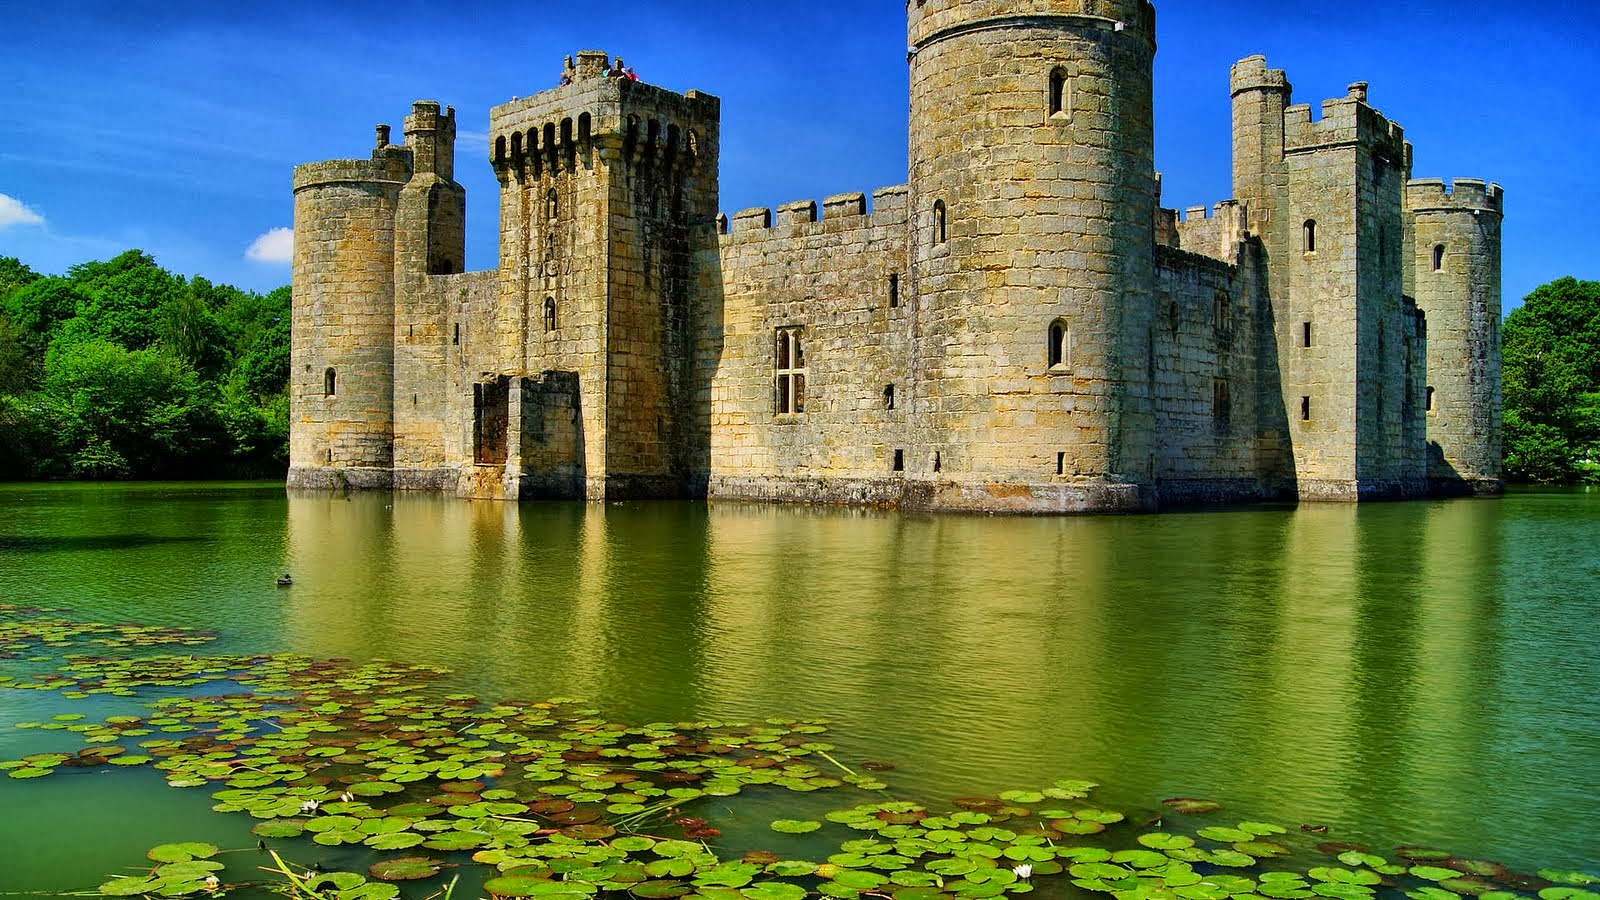 CASTLE HD WALLPAPERS FREE HD WALLPAPERS 1600x900